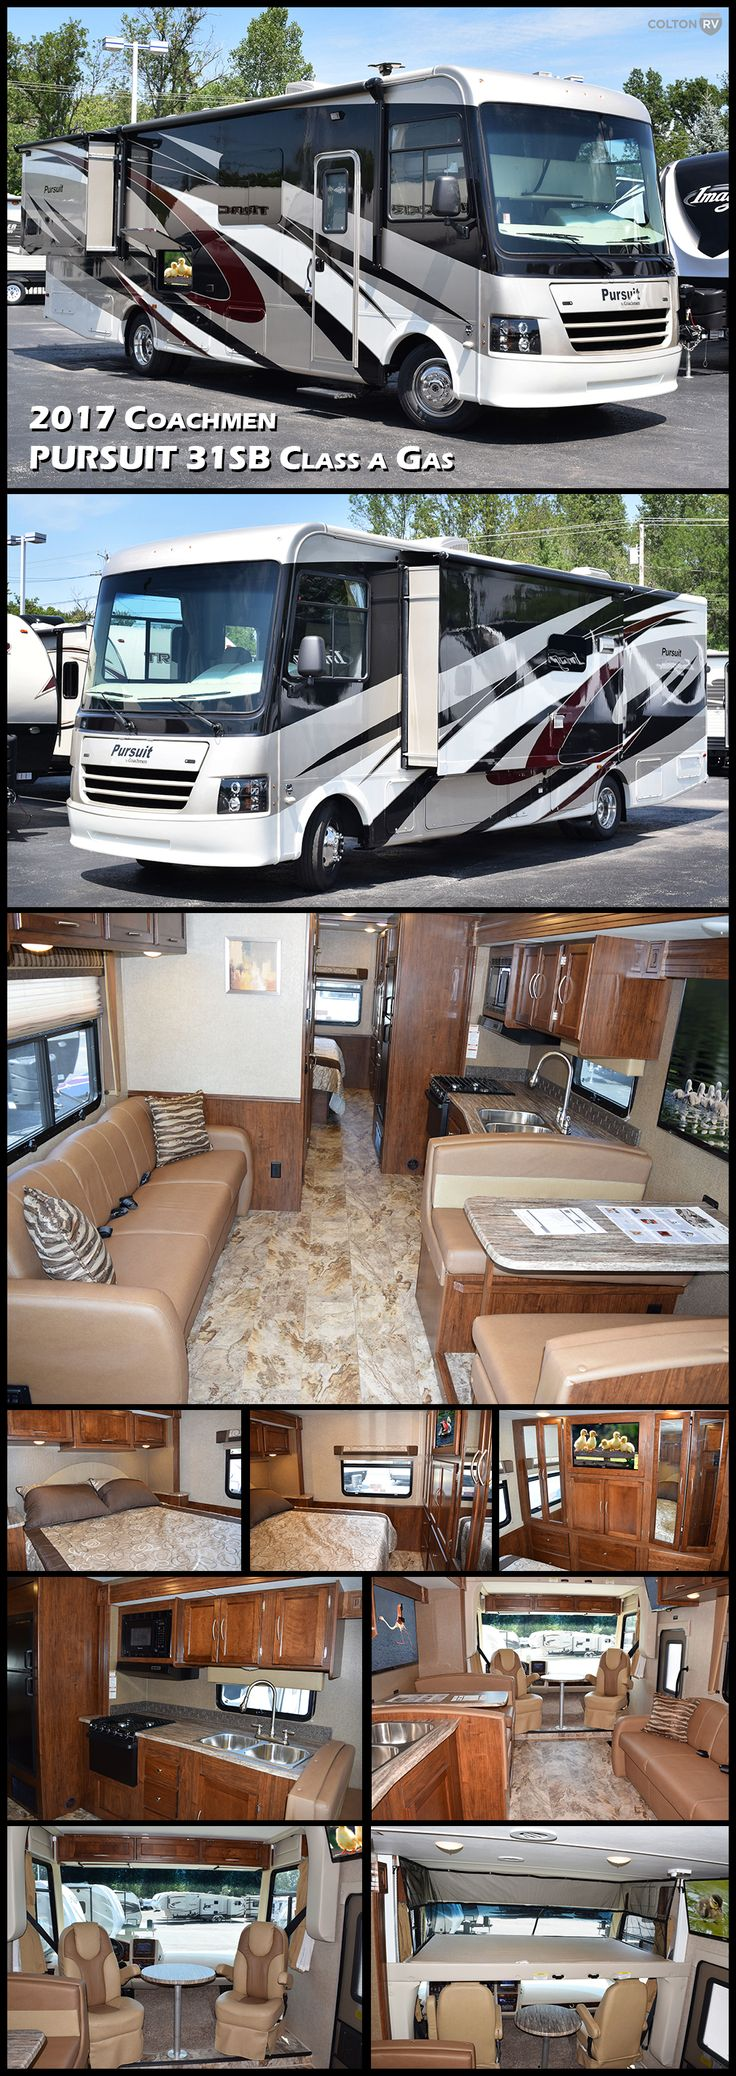 40 best class a motorhomes gas images on pinterest motorhome